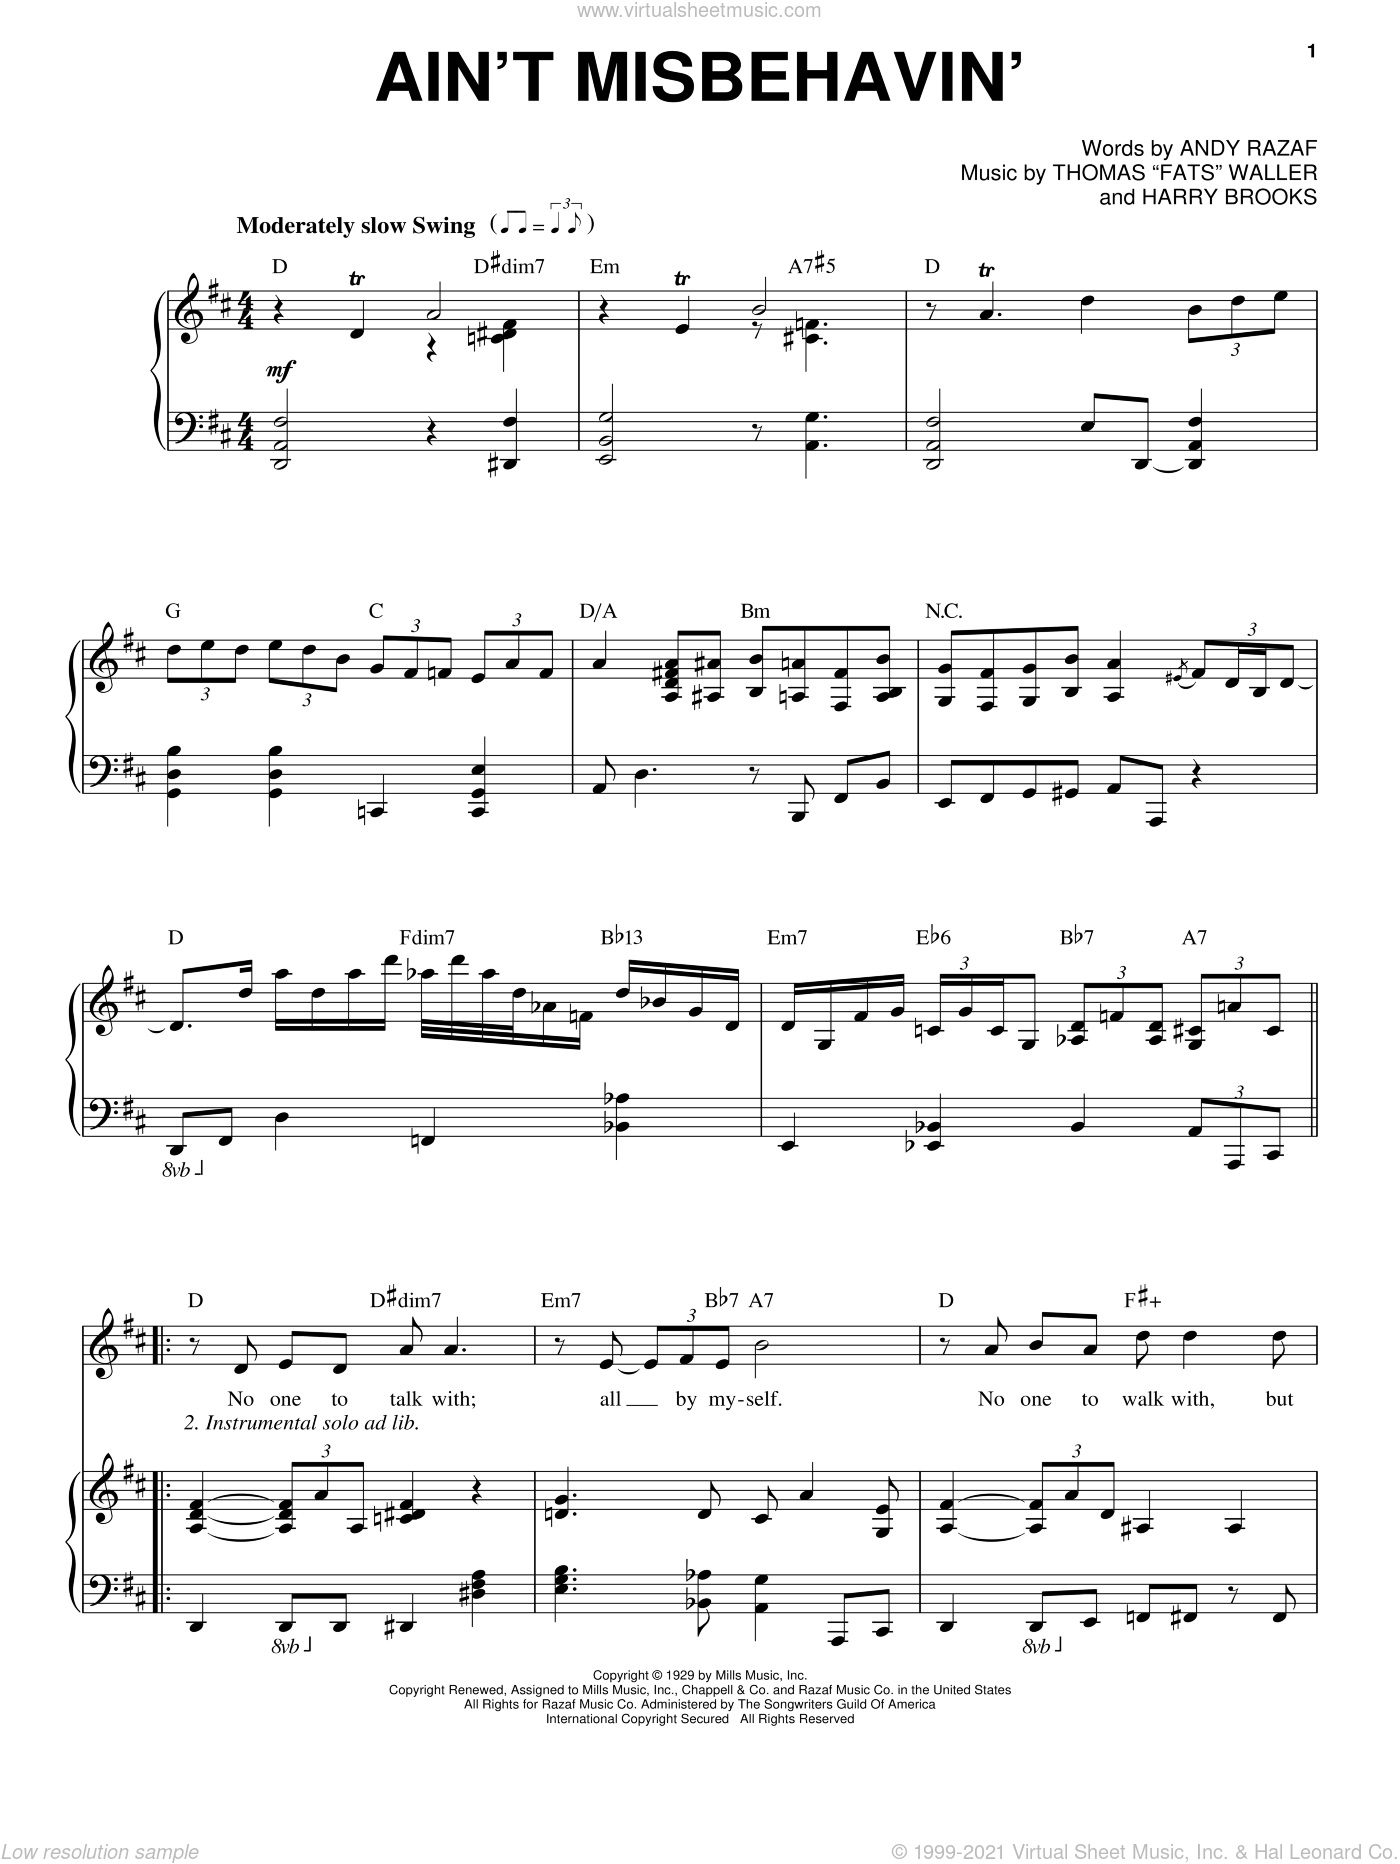 Ain't Misbehavin' sheet music for voice and piano by Fats Waller